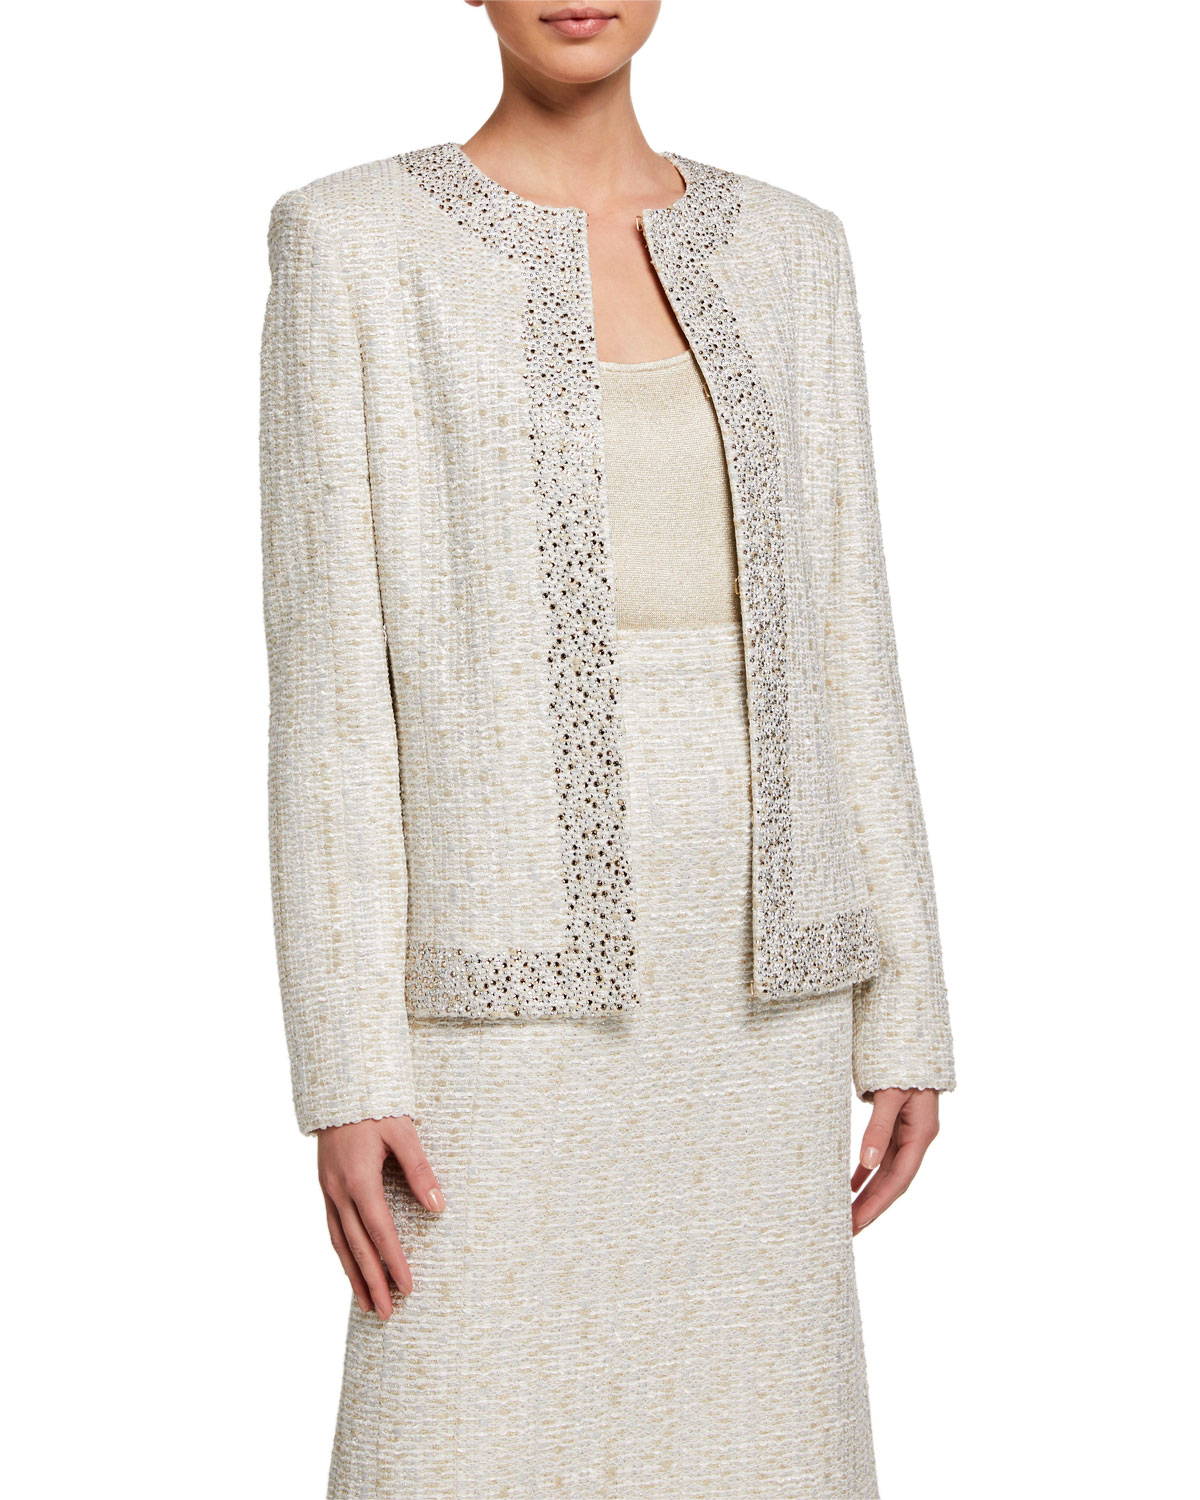 St. John Collection Tweed Sequined Jacket